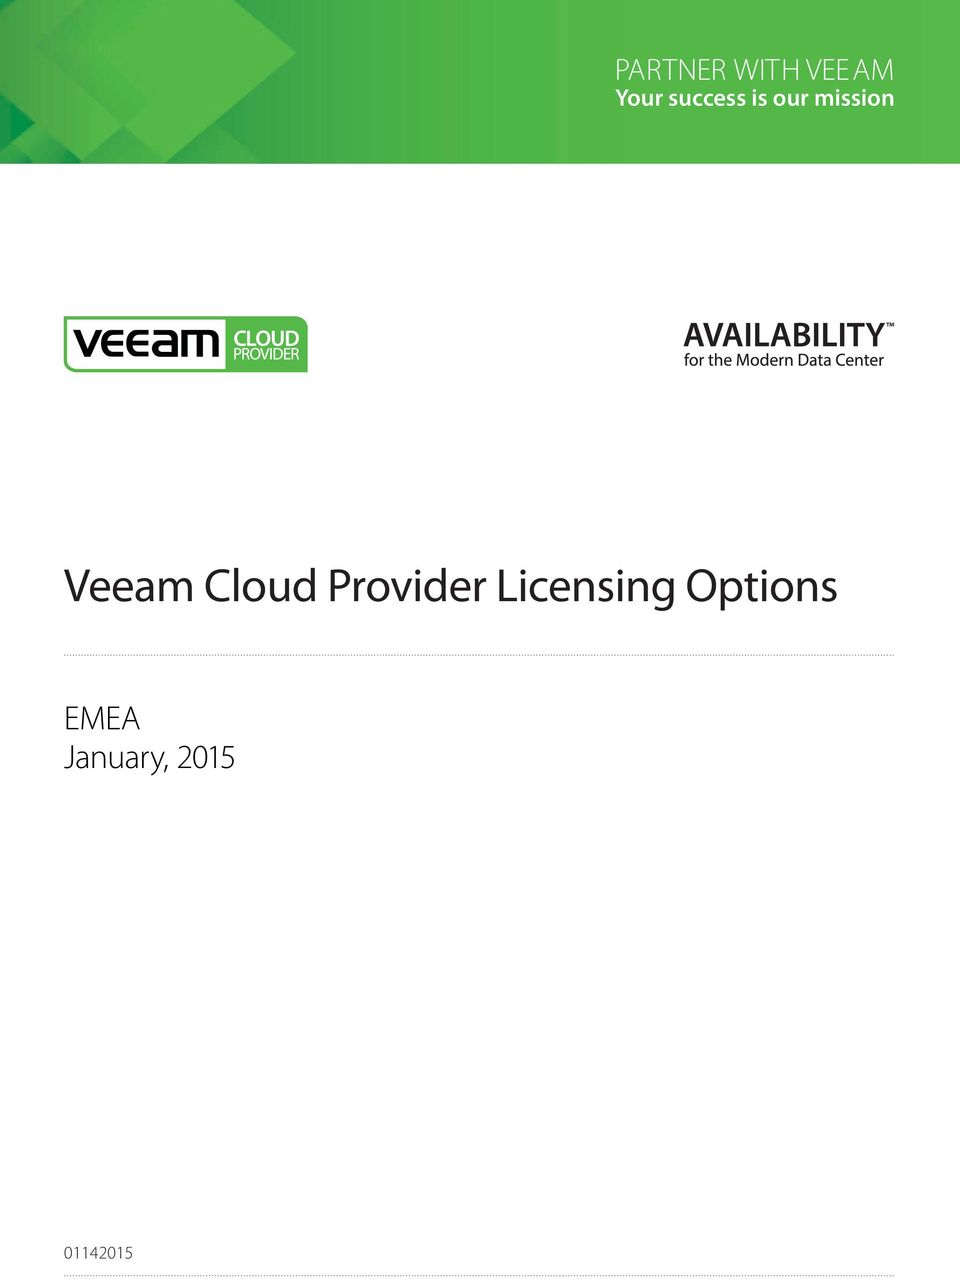 Your success is our mission Veeam